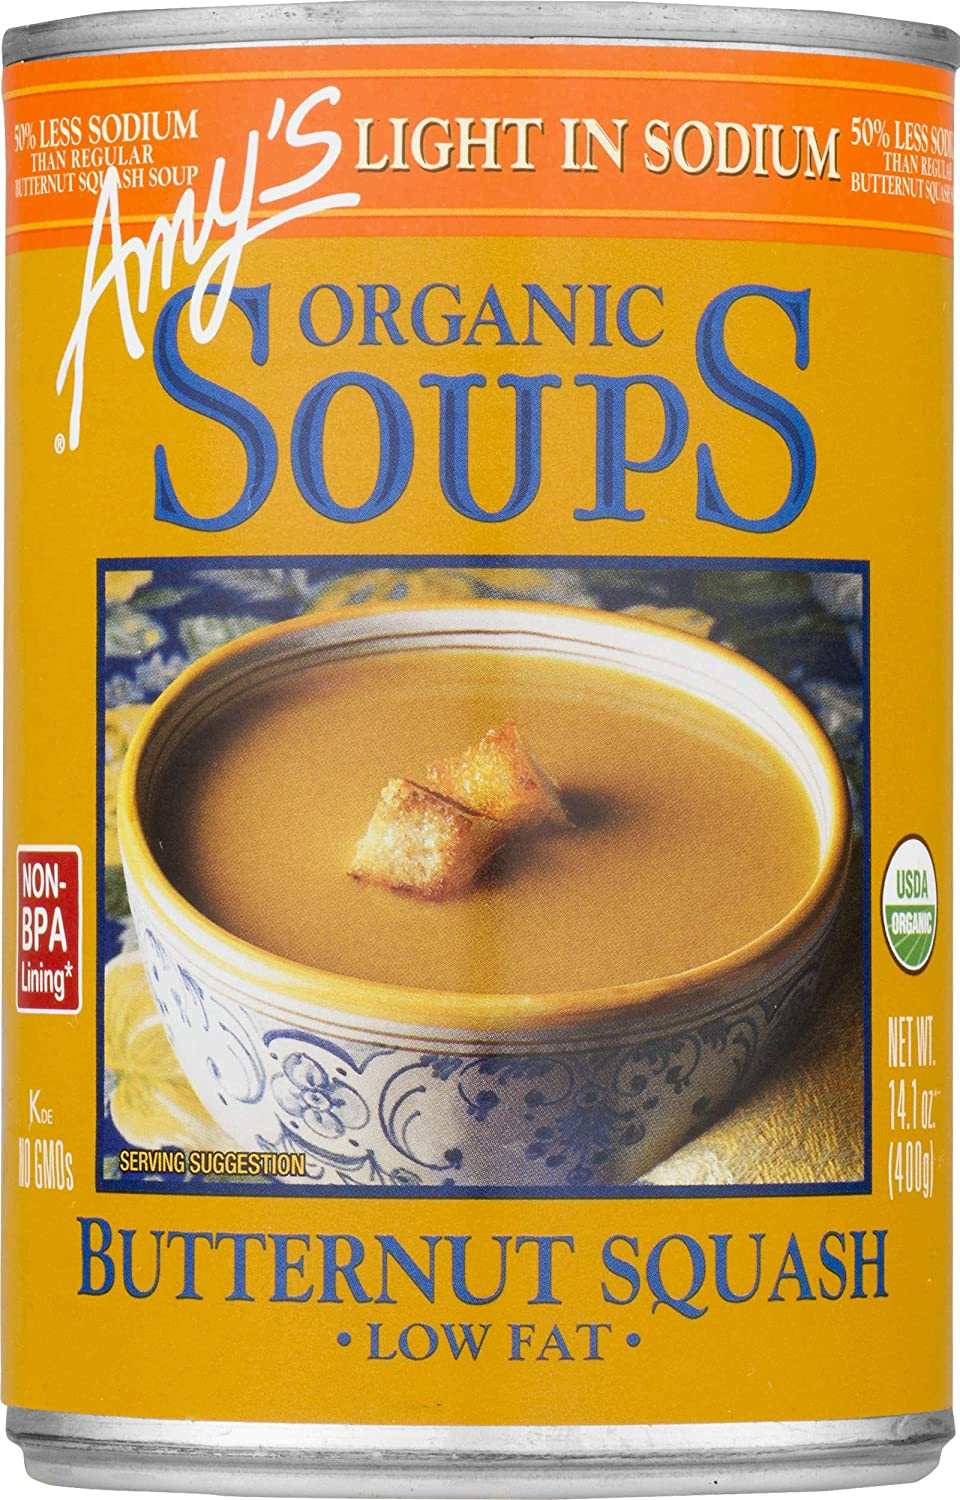 Amy's Organic Soups, Butternut Squash, 14.1 Ounce (Pack of 12)